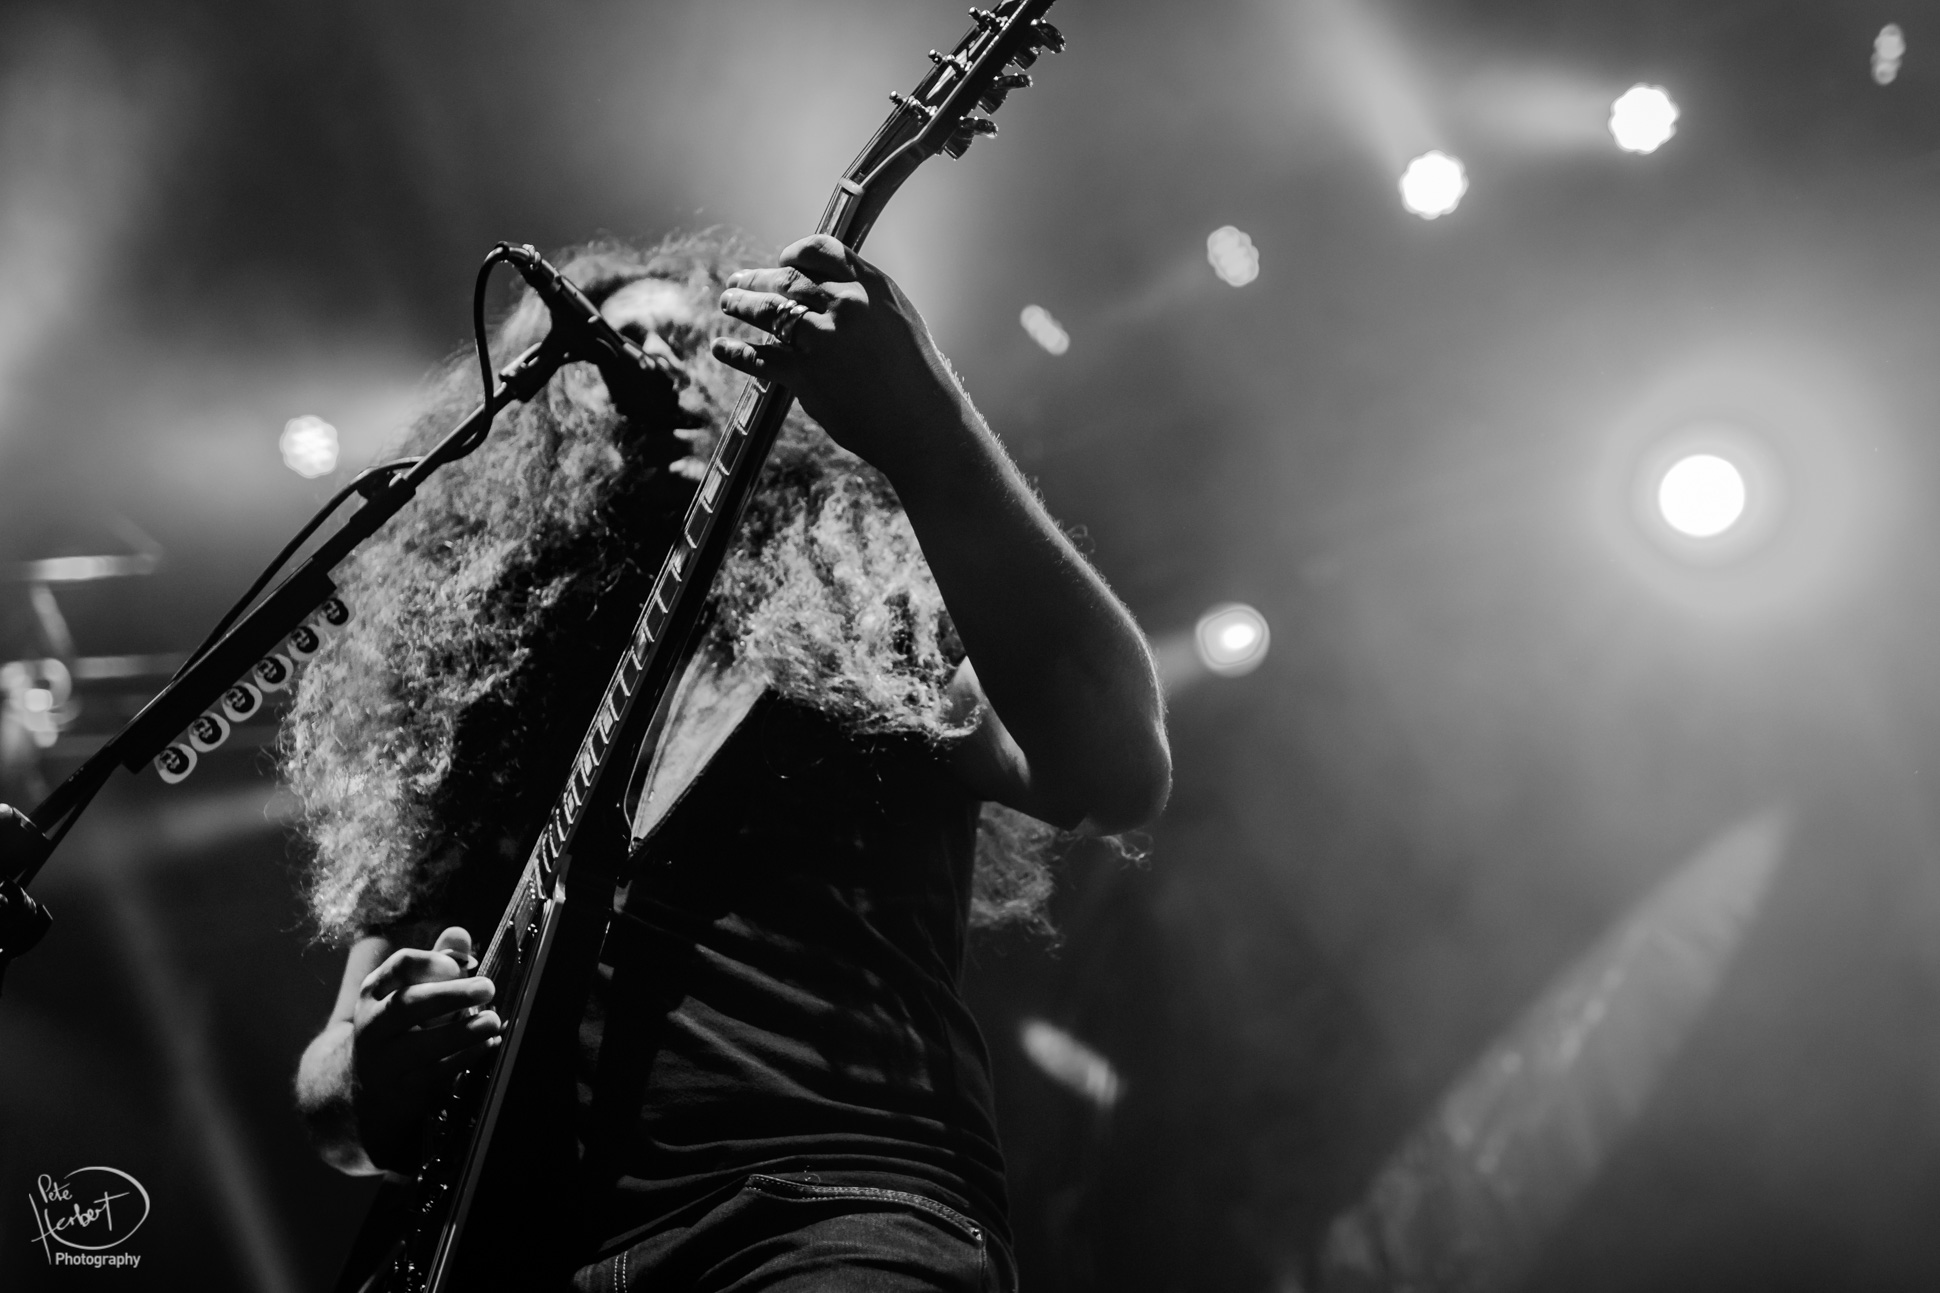 Coheed & Cambria - The Roundhouse - 16.10.18 - London-3.JPG